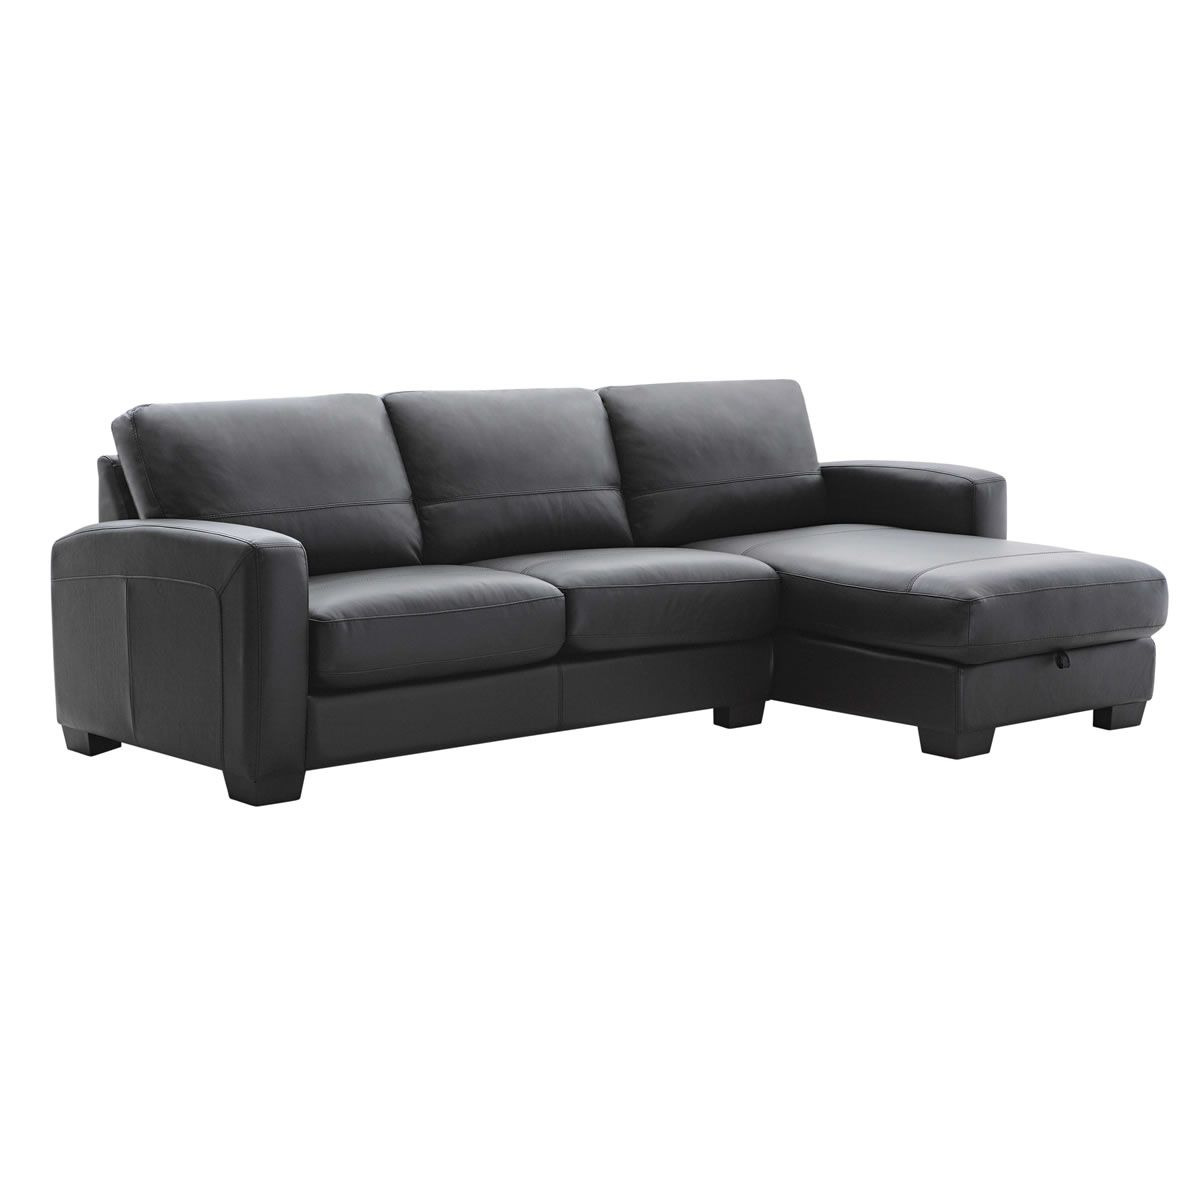 COMPAC 2.5-Seater Leather Lounge with Storage Chaise | The loungiest ...